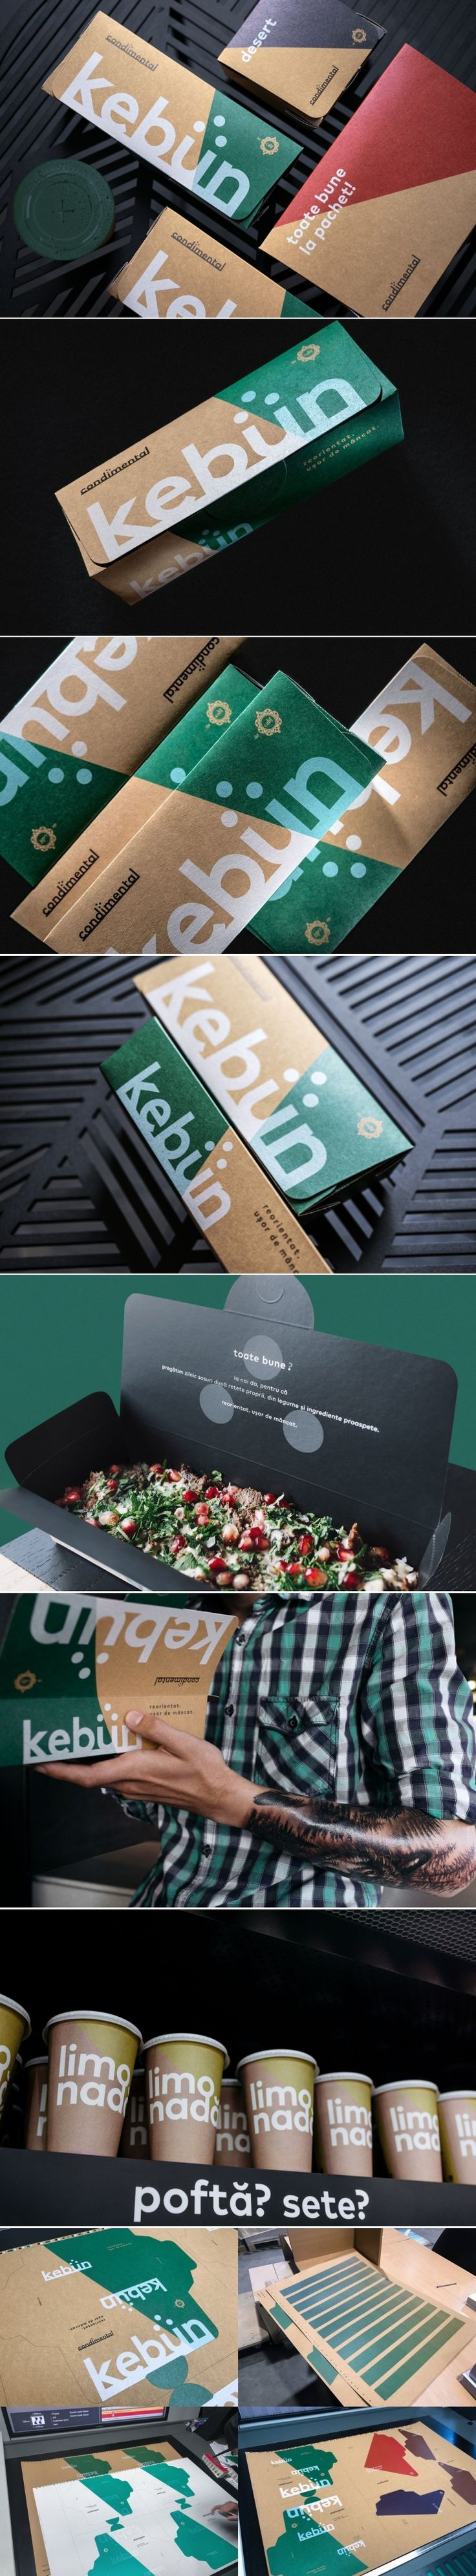 The Typography On Kebun's Packaging is Sure To Draw The Consumer In — The Dieline | Packaging & Branding Design & Innovation News